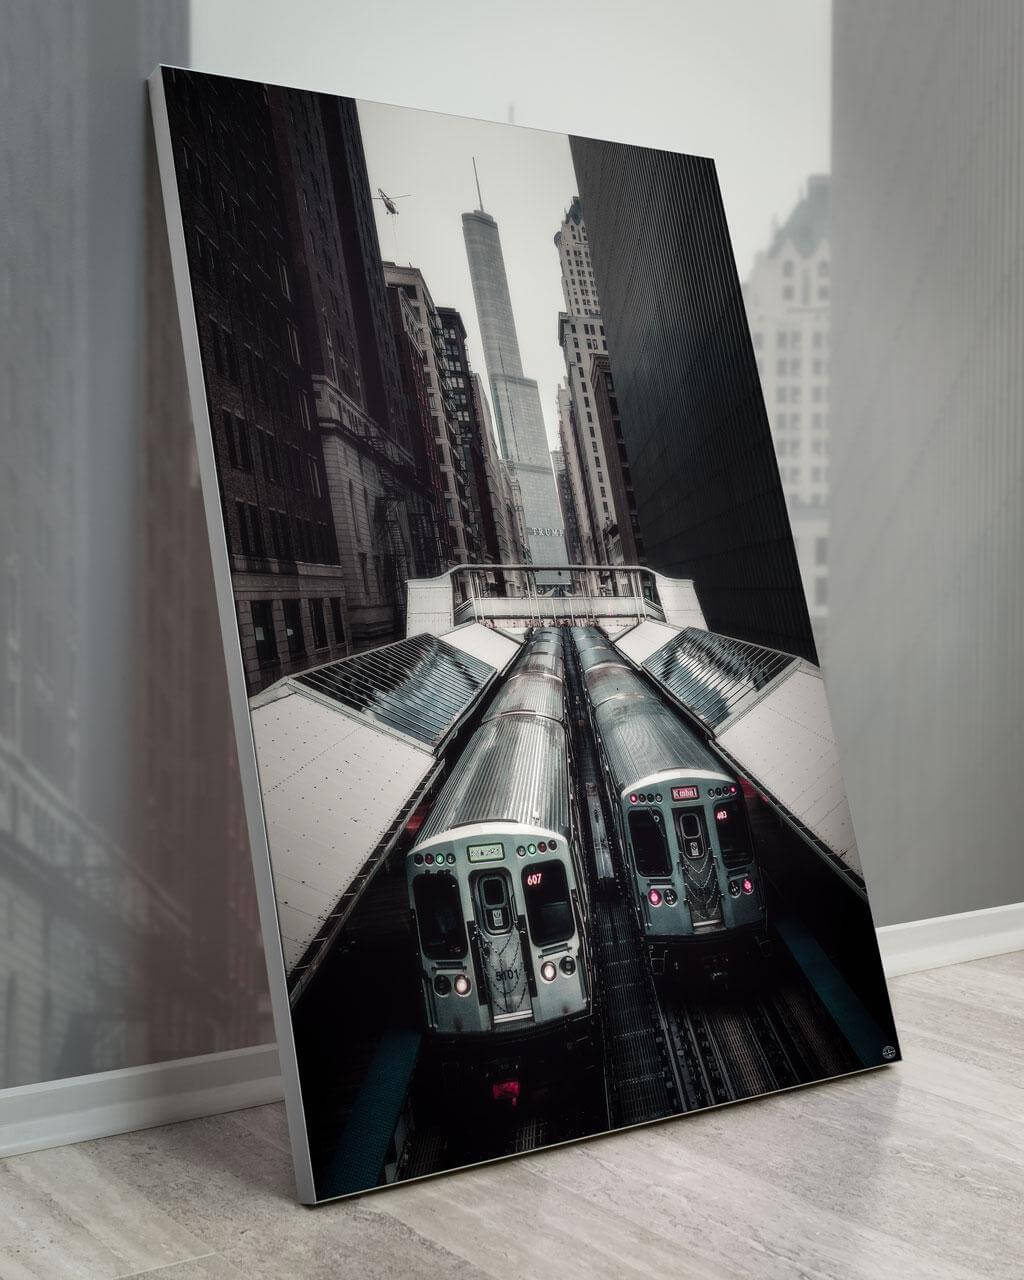 Gigantic Big Biggest Massive Huge Large Largest Giant Wall Décor Art Backlit Fabric Home Deco Artwork Artist landscape street city nature Scenic Photographer Scott Wilson Chicago Big City Trains Skyline